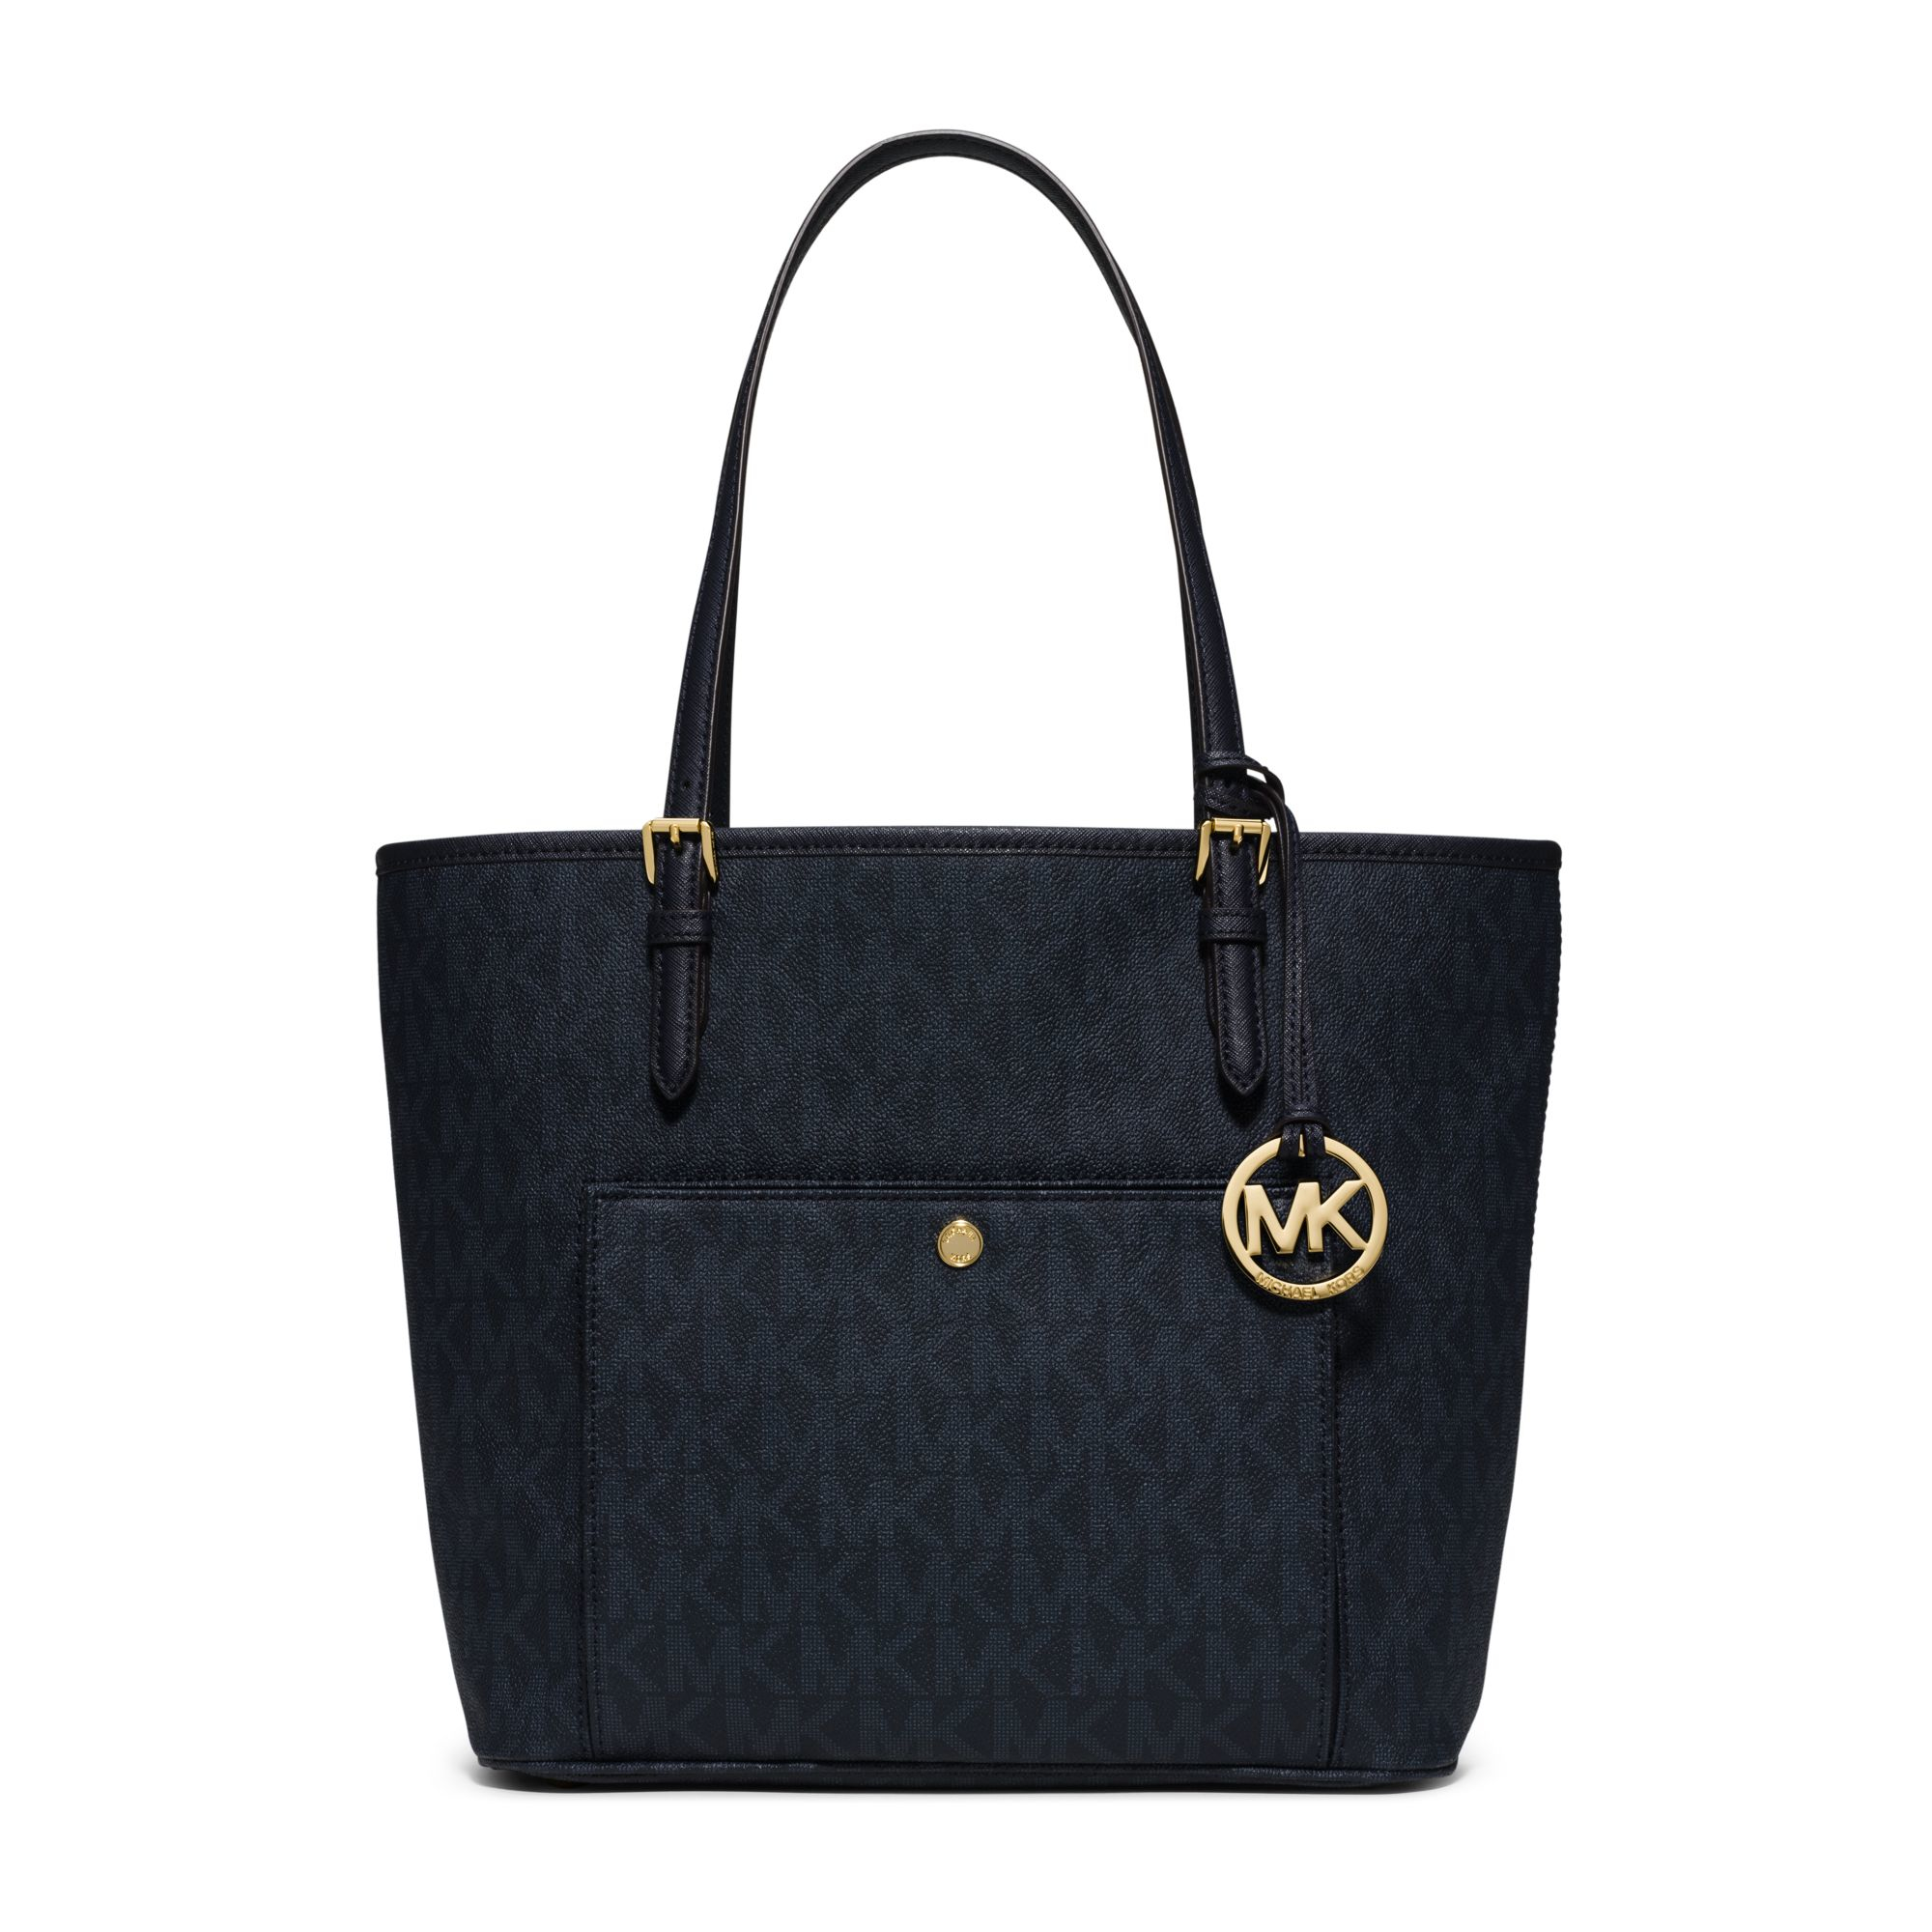 290eafb940c0 Michael kors Jet Set Large Logo Tote in Blue